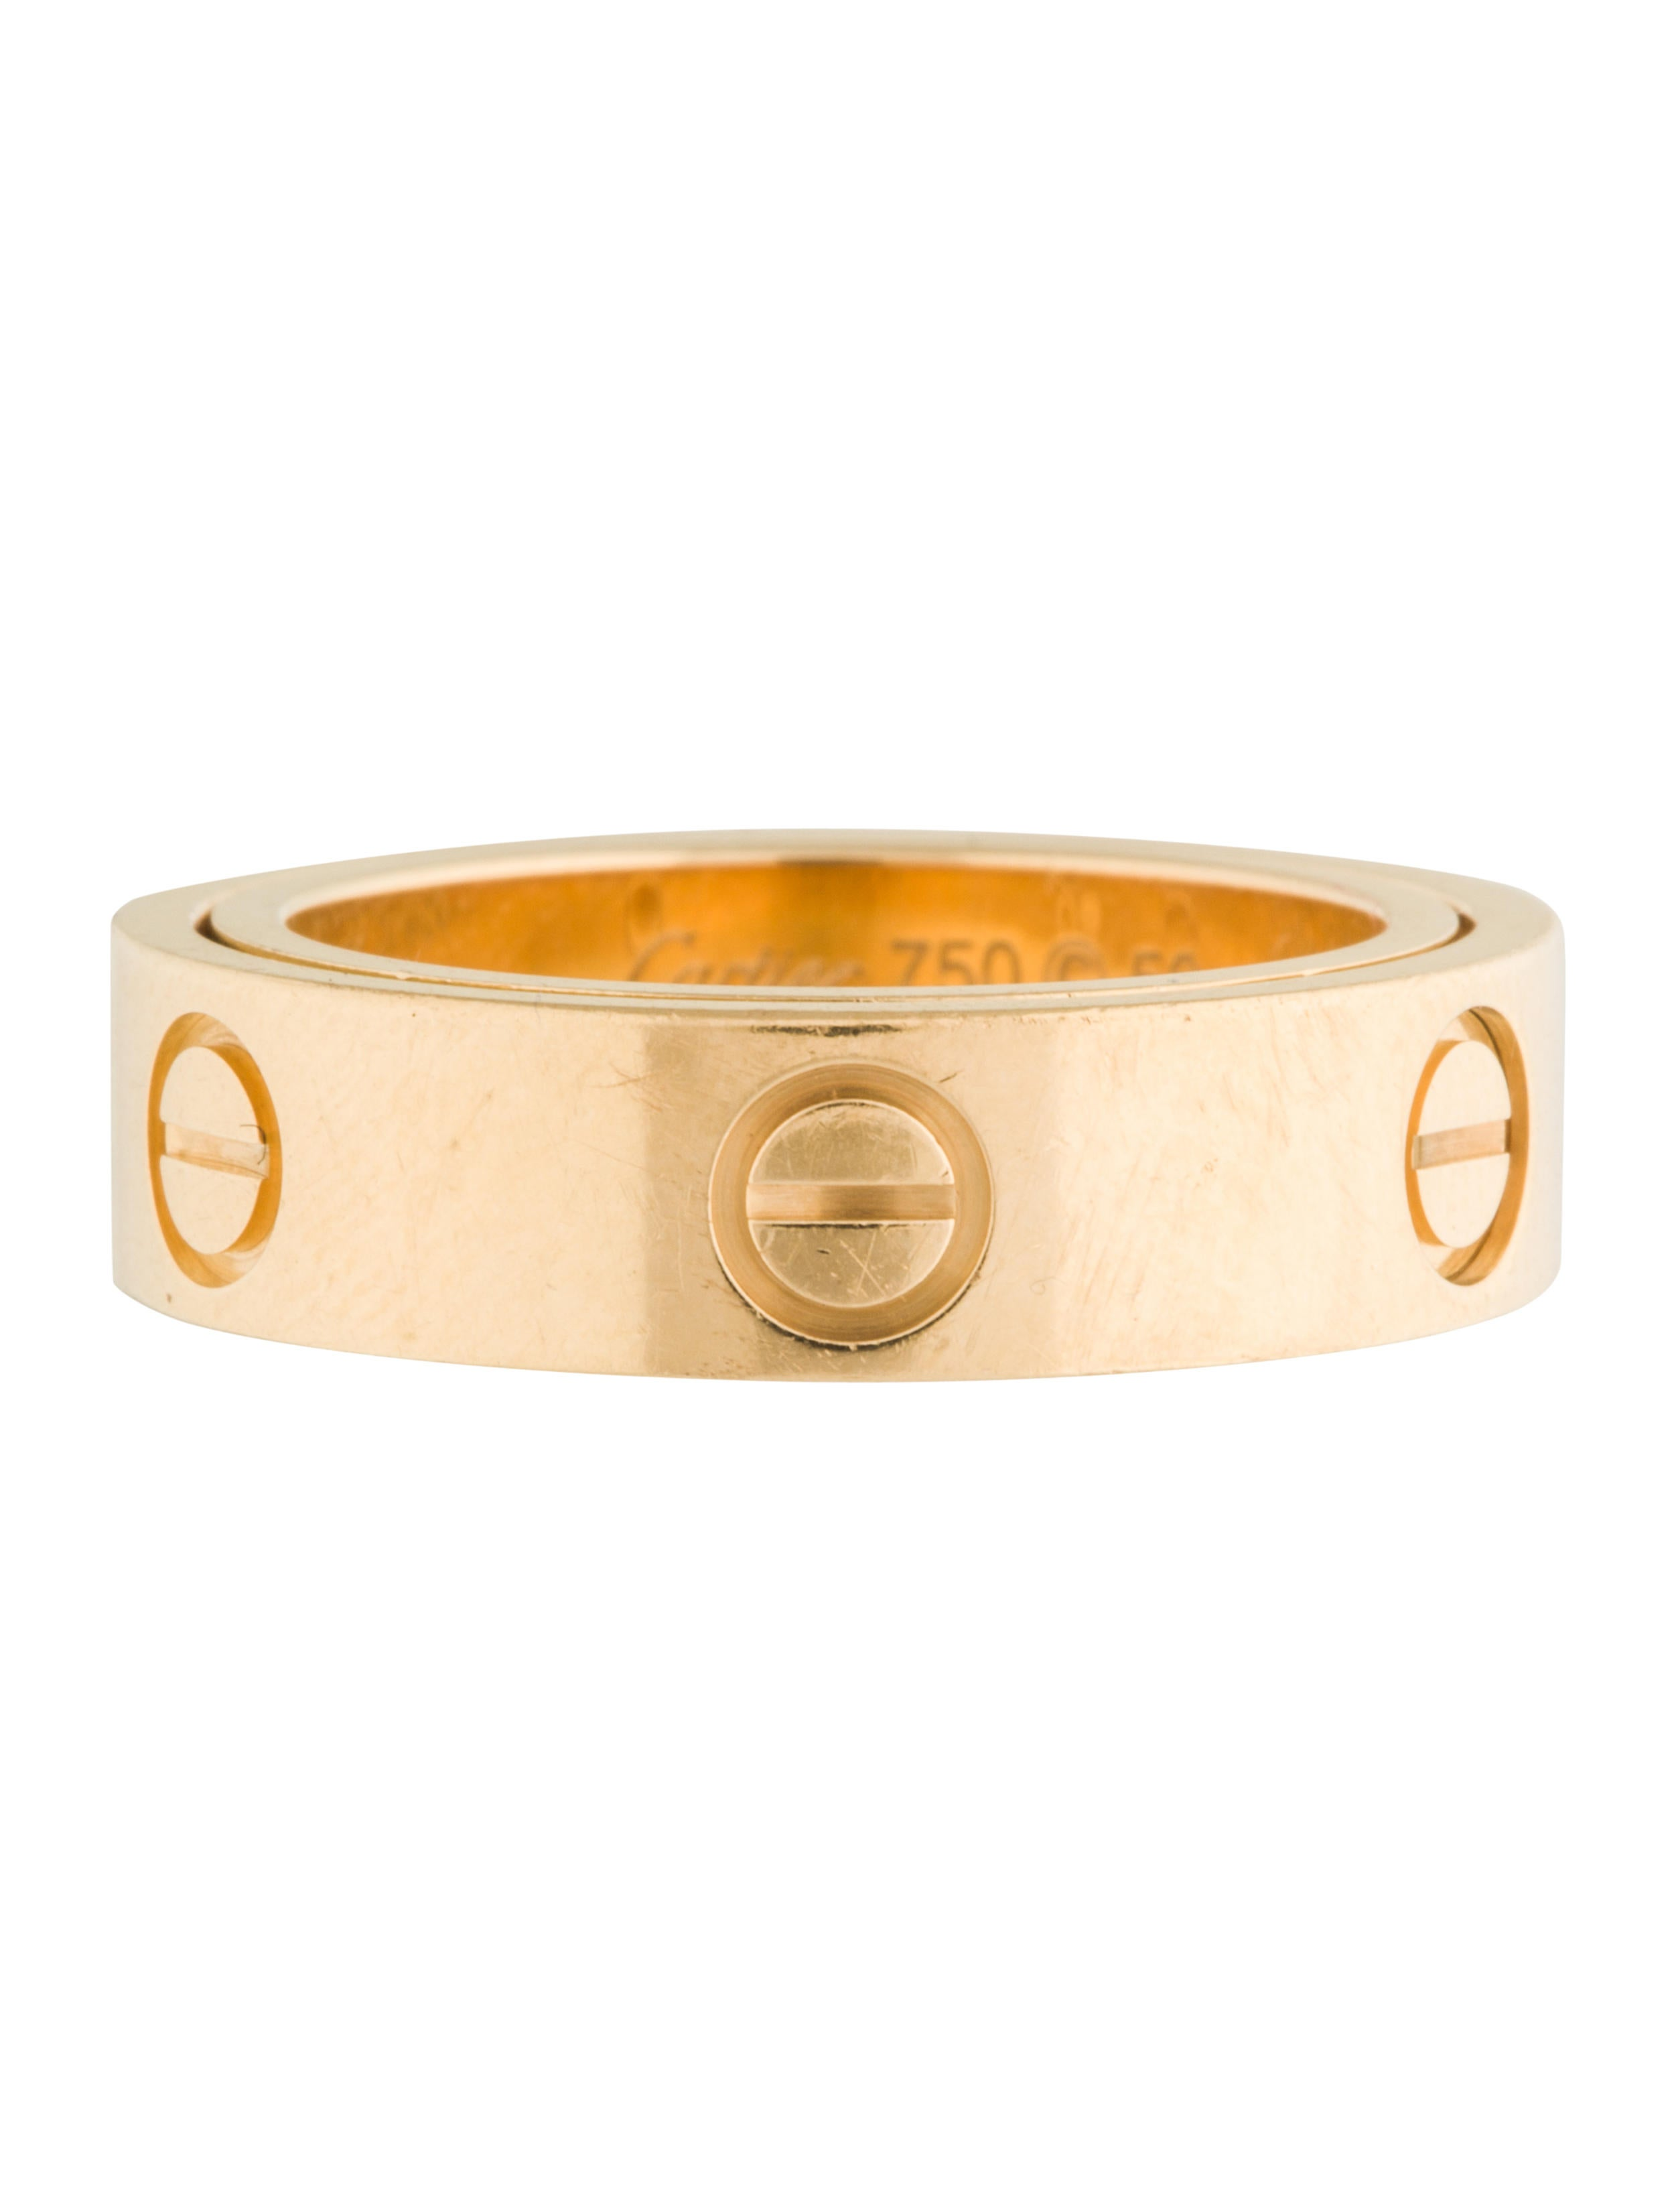 Cartier Astro LOVE Ring - Rings - CRT31148   The RealReal